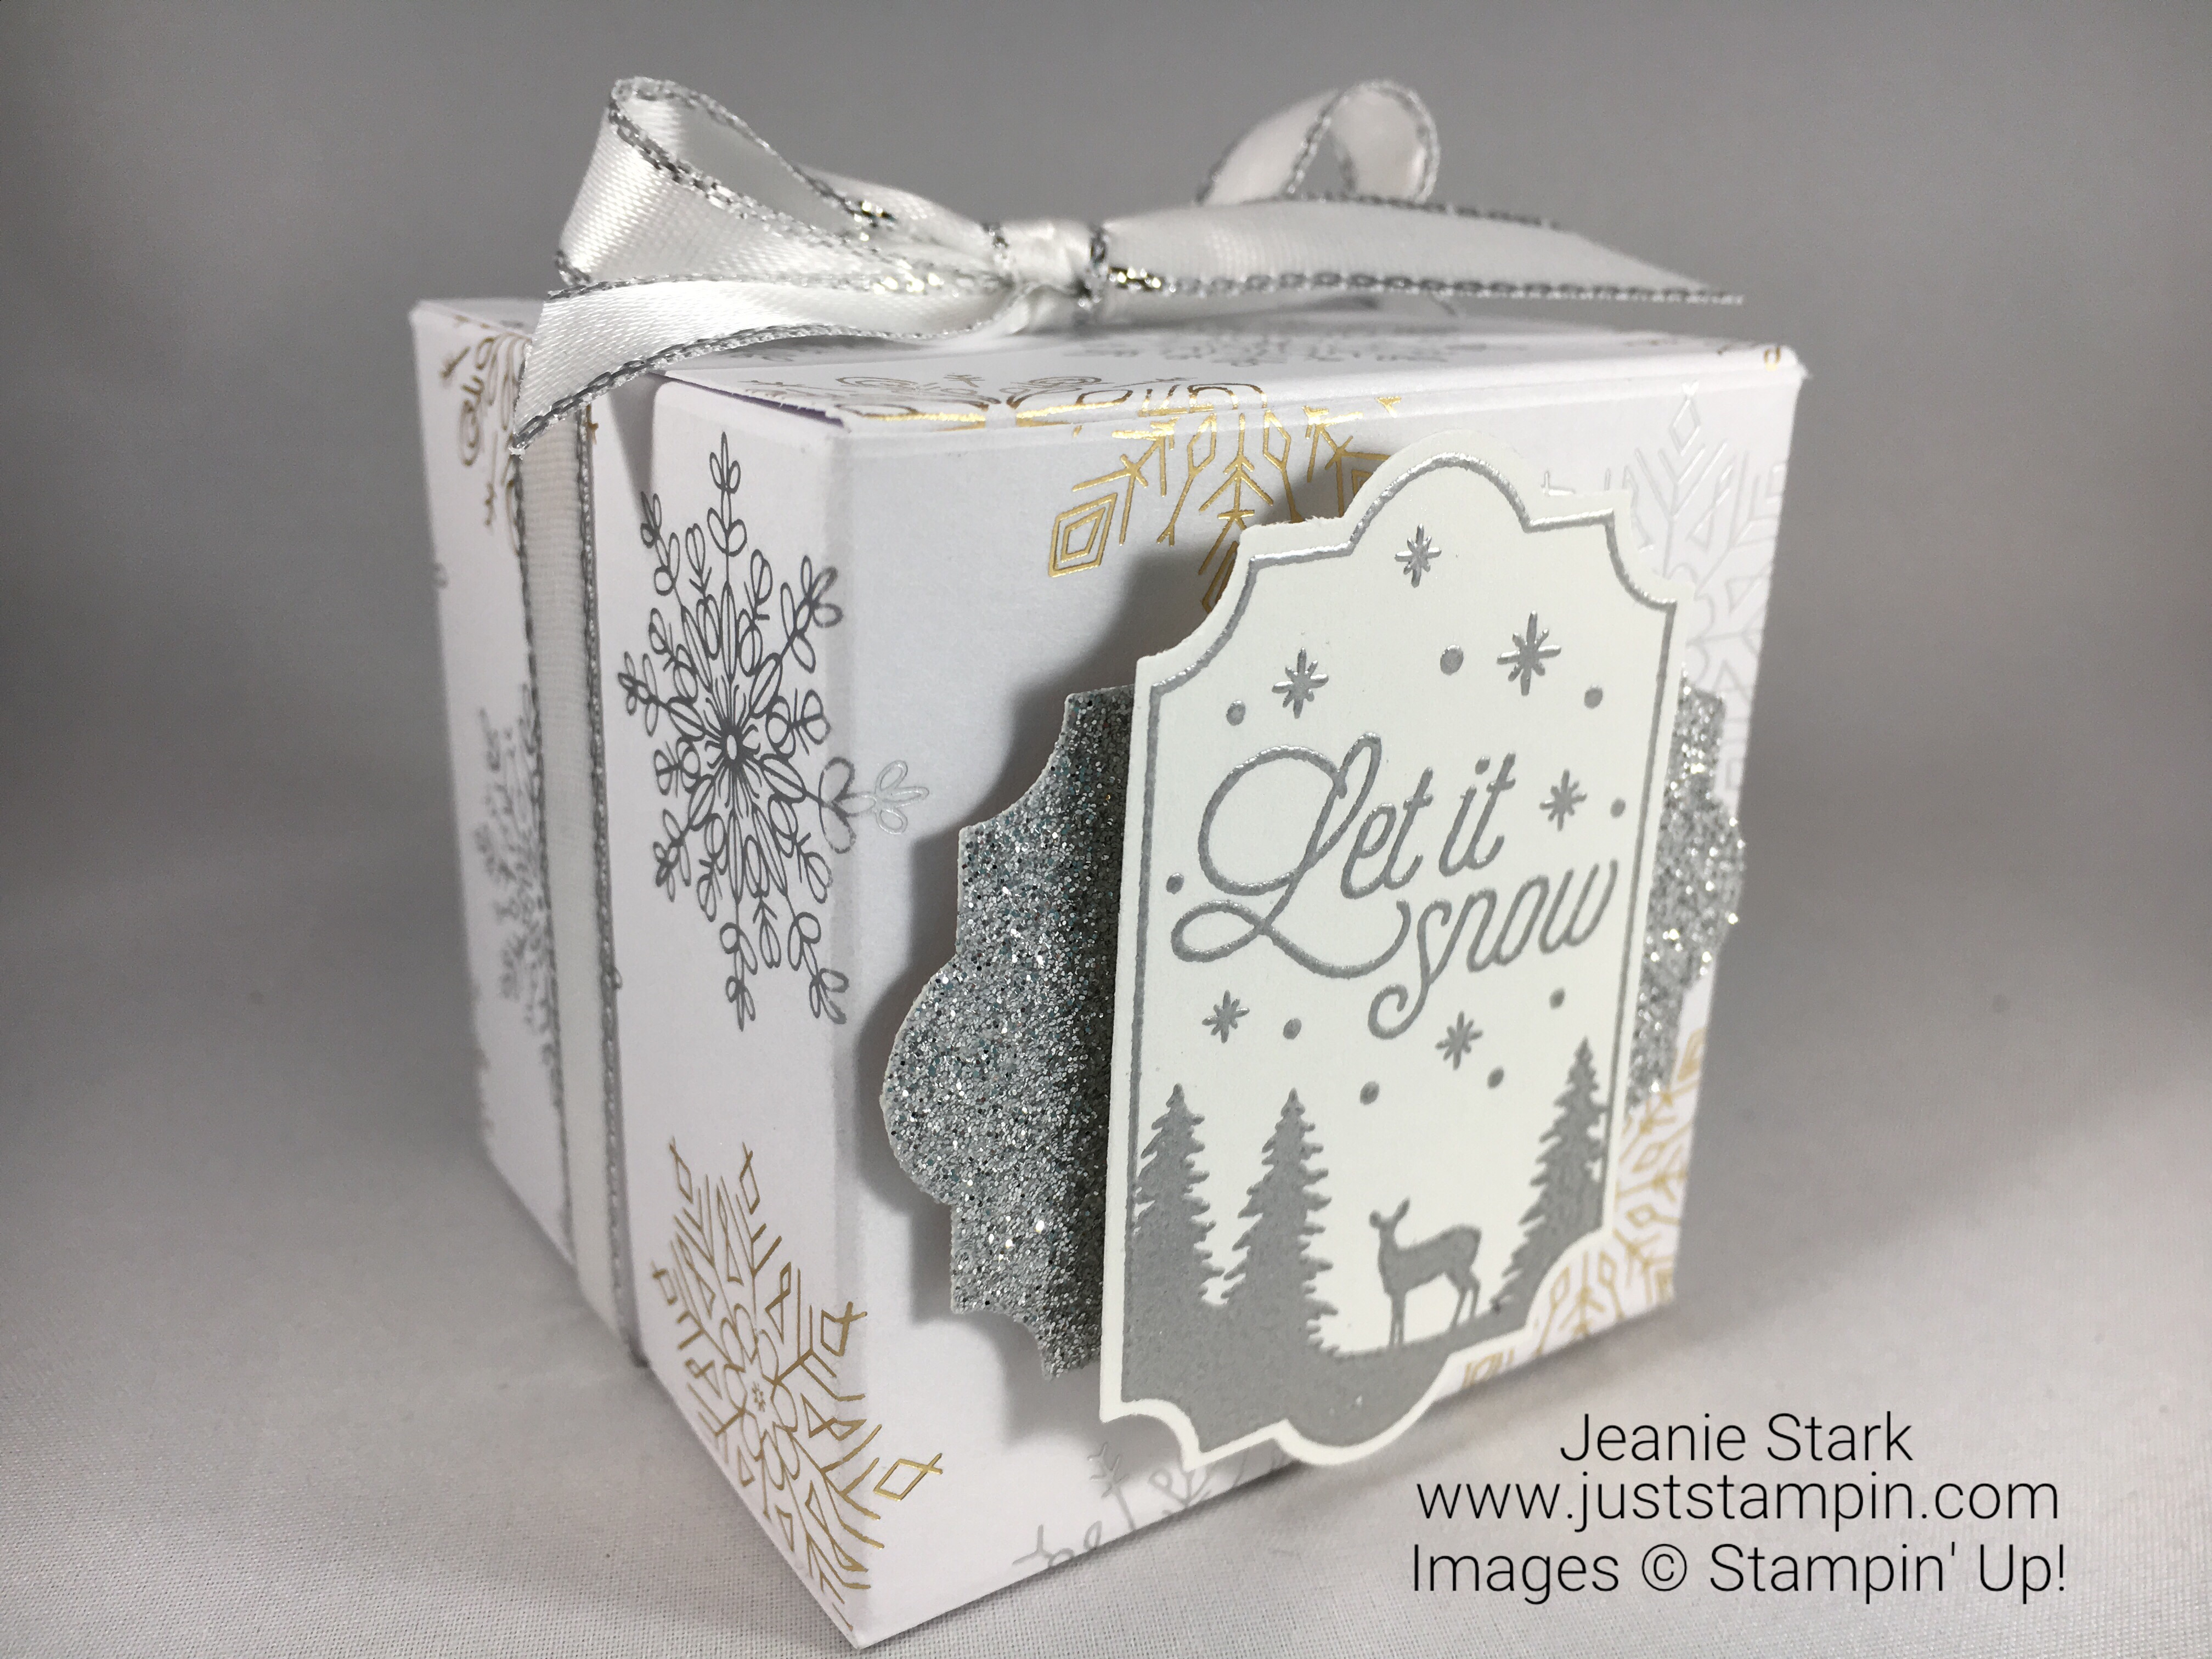 Stampin Up Year of Cheer and Merry Little Labels gift box idea - Jeanie Stark StampinUp